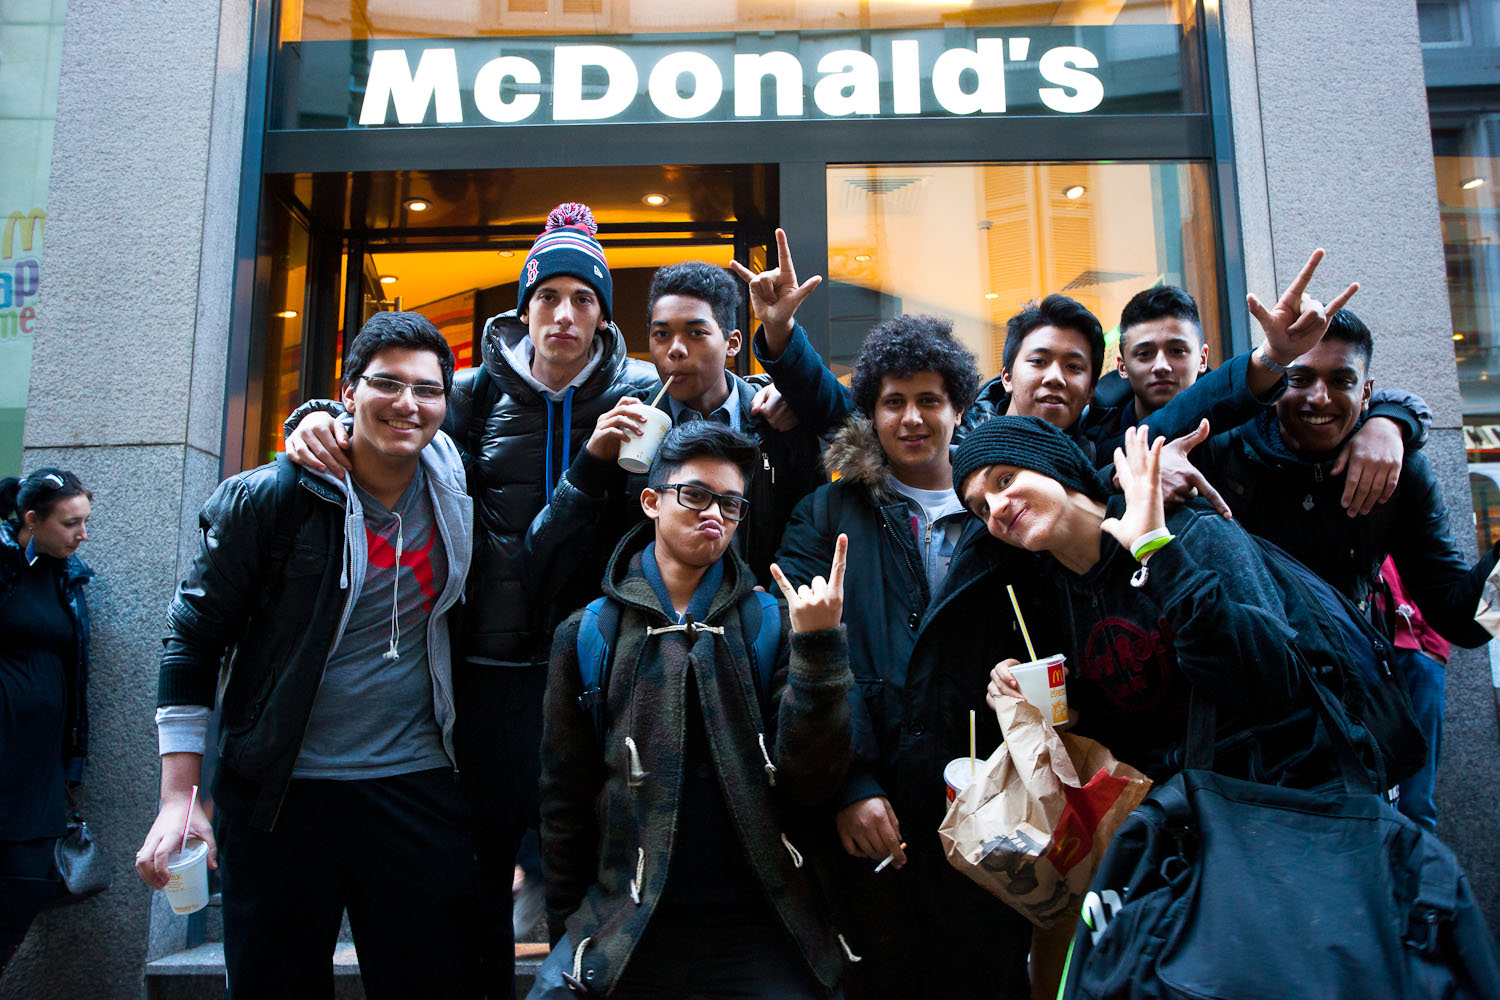 This is our MCD and we are happy